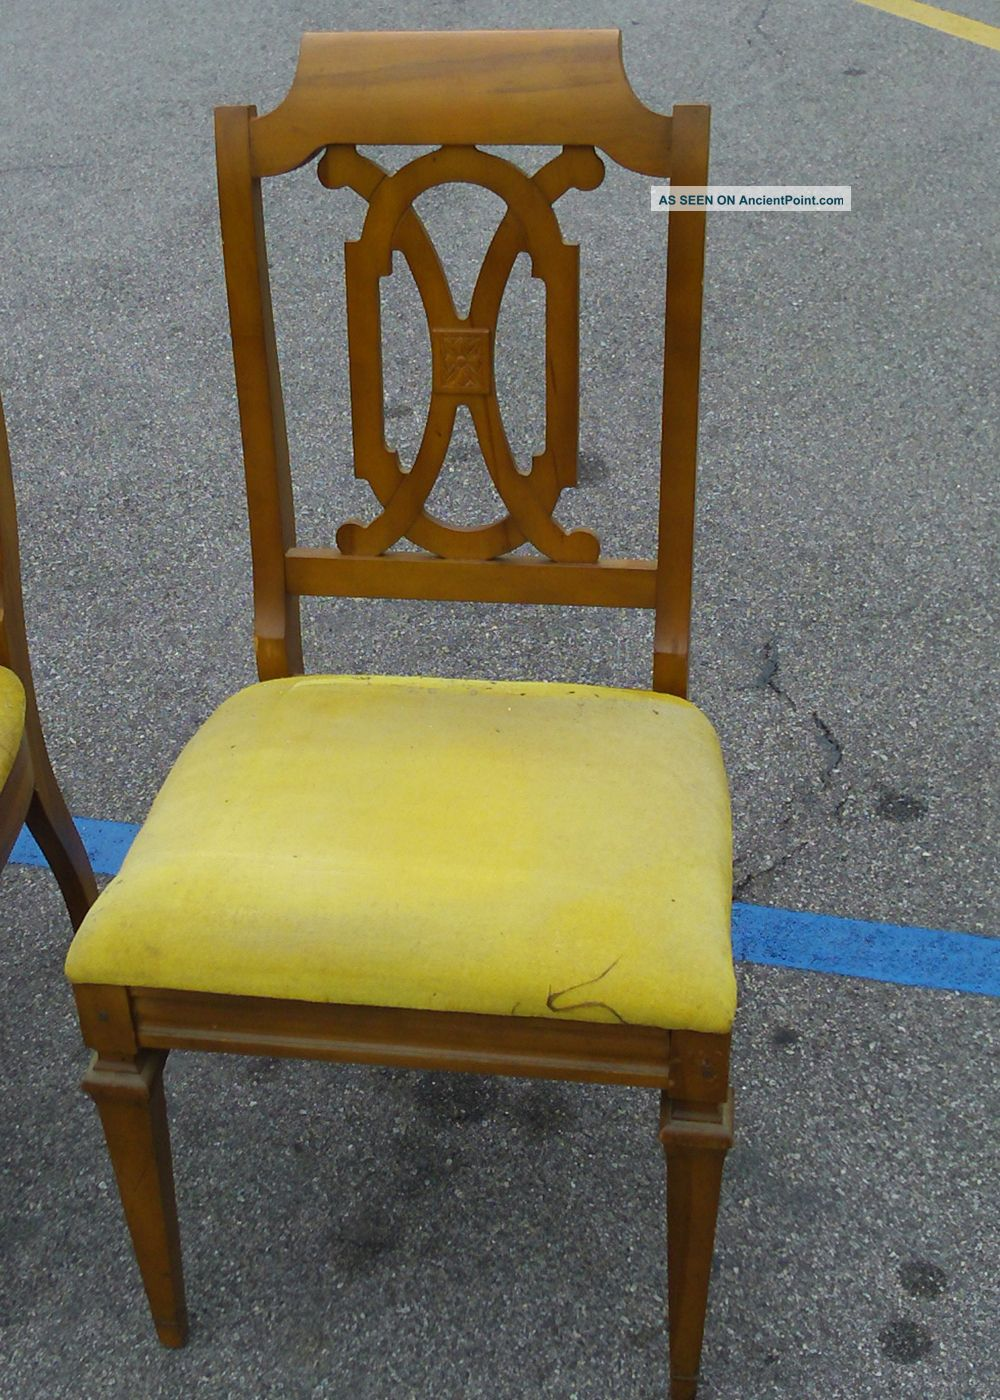 Vintage Hollywood Regency Curved Wood Dining Room Chairs Mustard Yellow Cushions